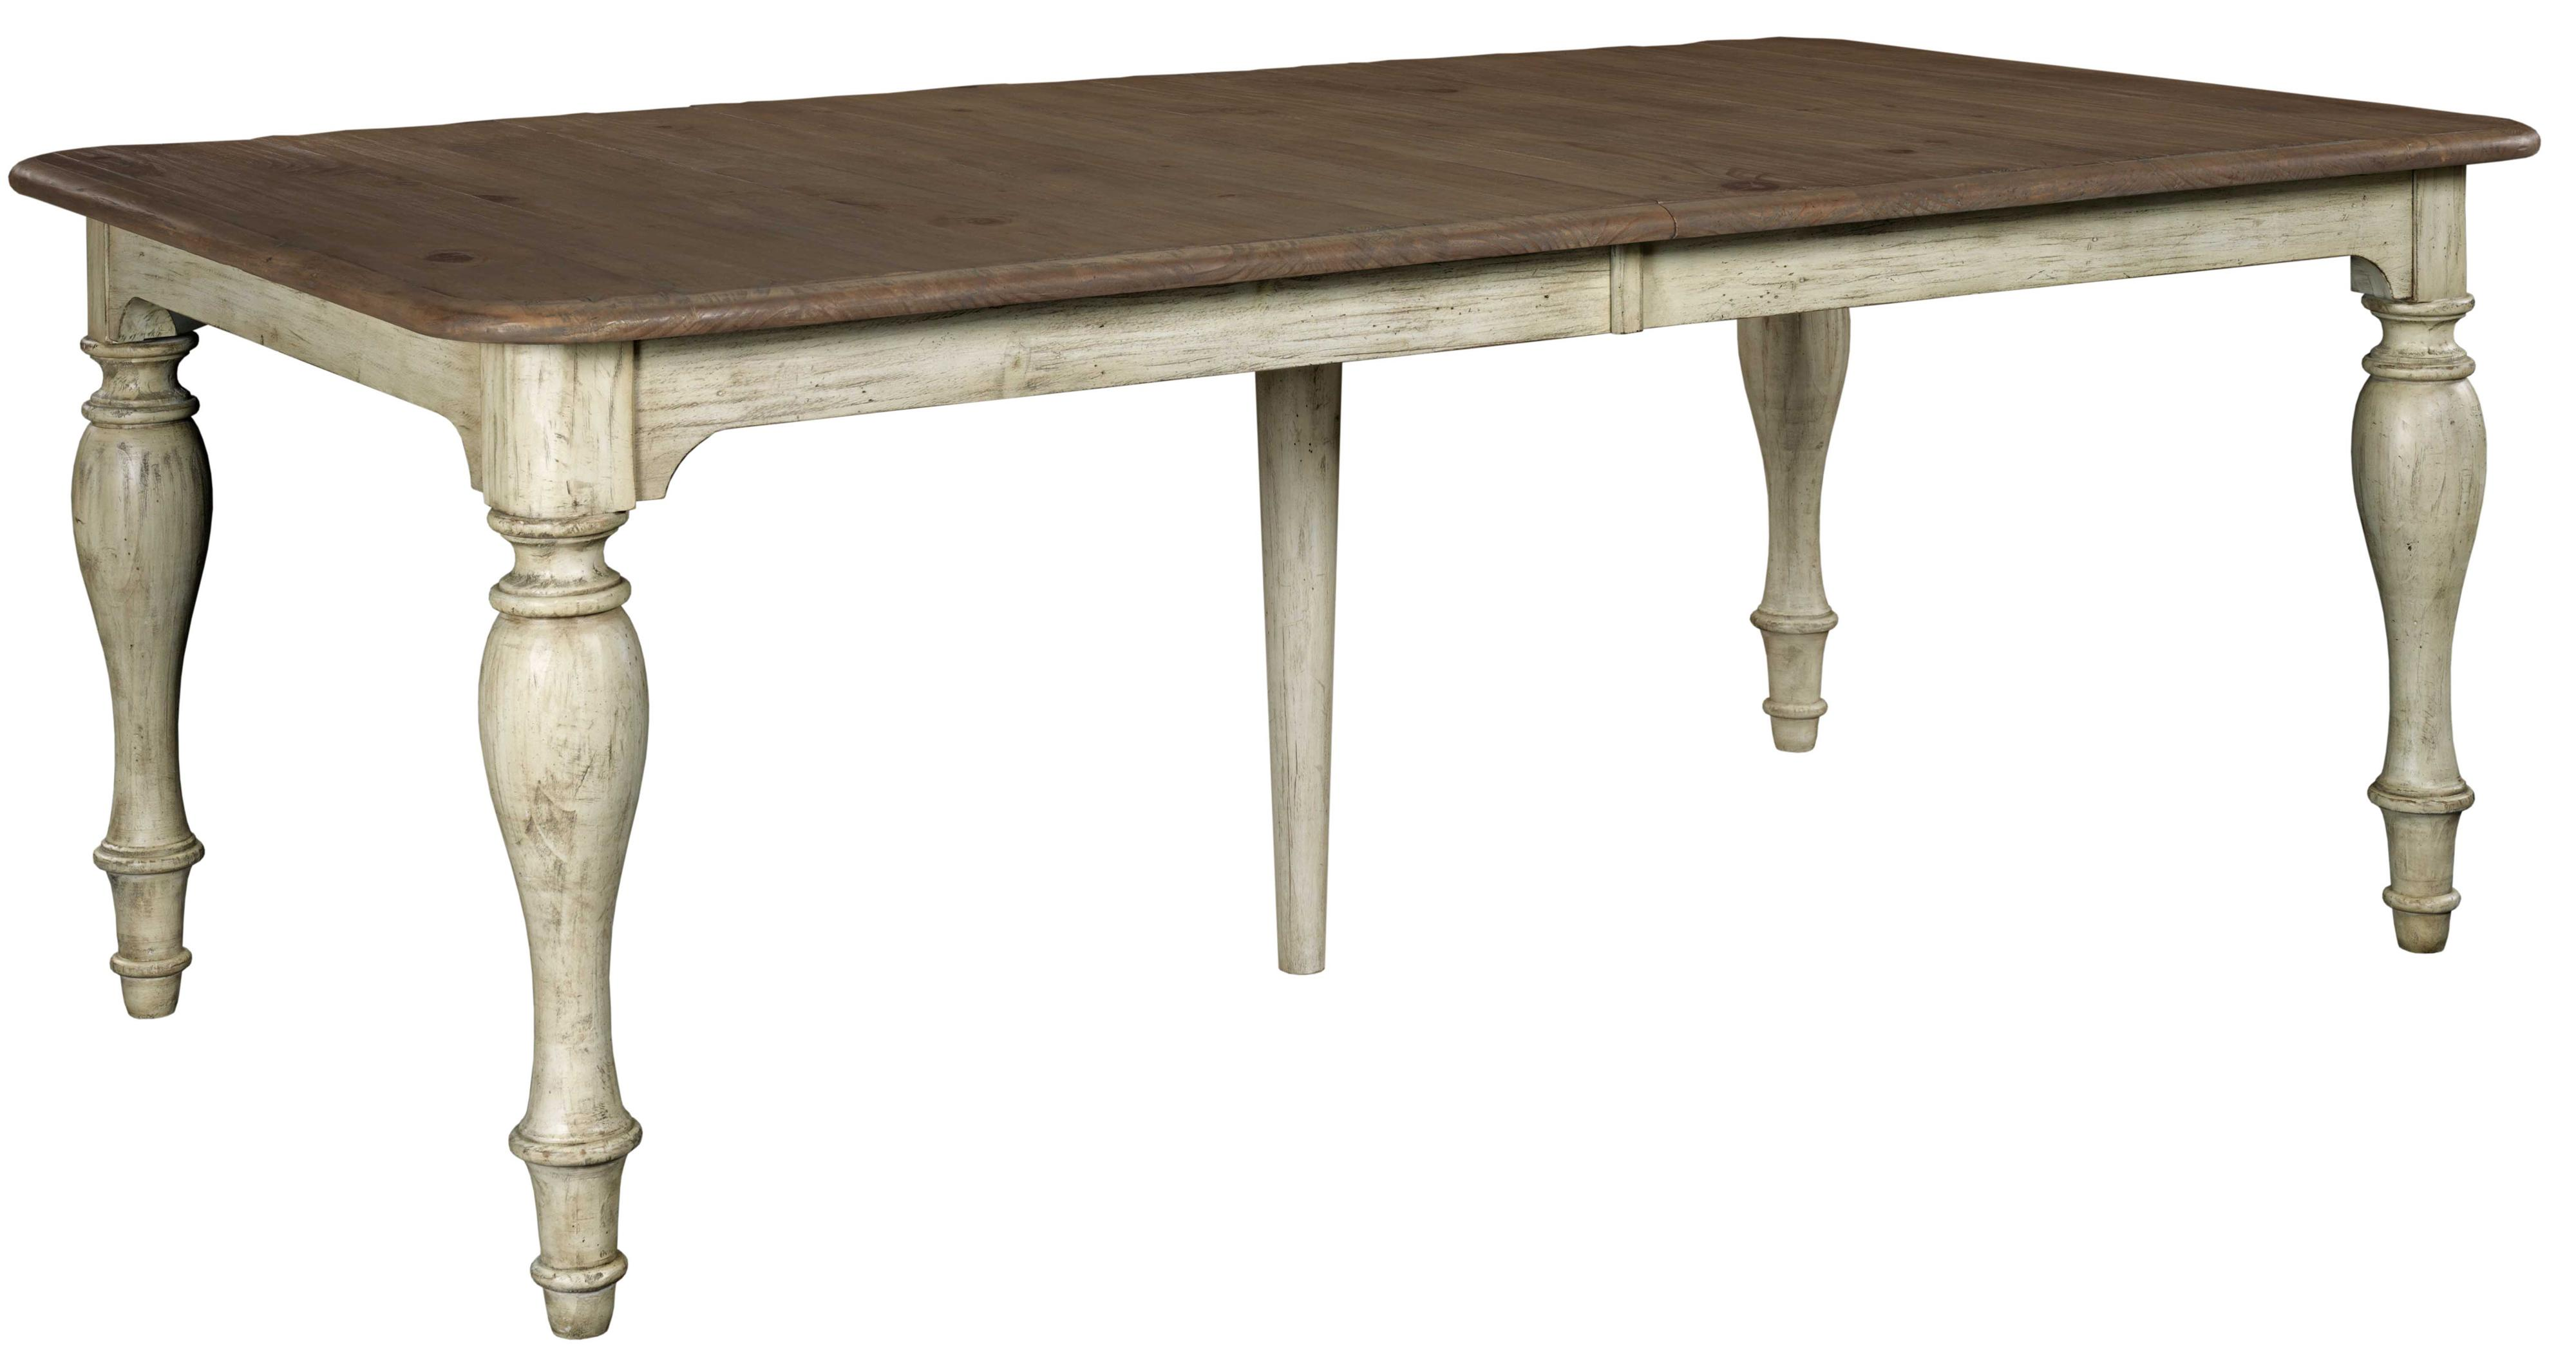 Kincaid Furniture Weatherford Canterbury Table - Item Number: 75-054